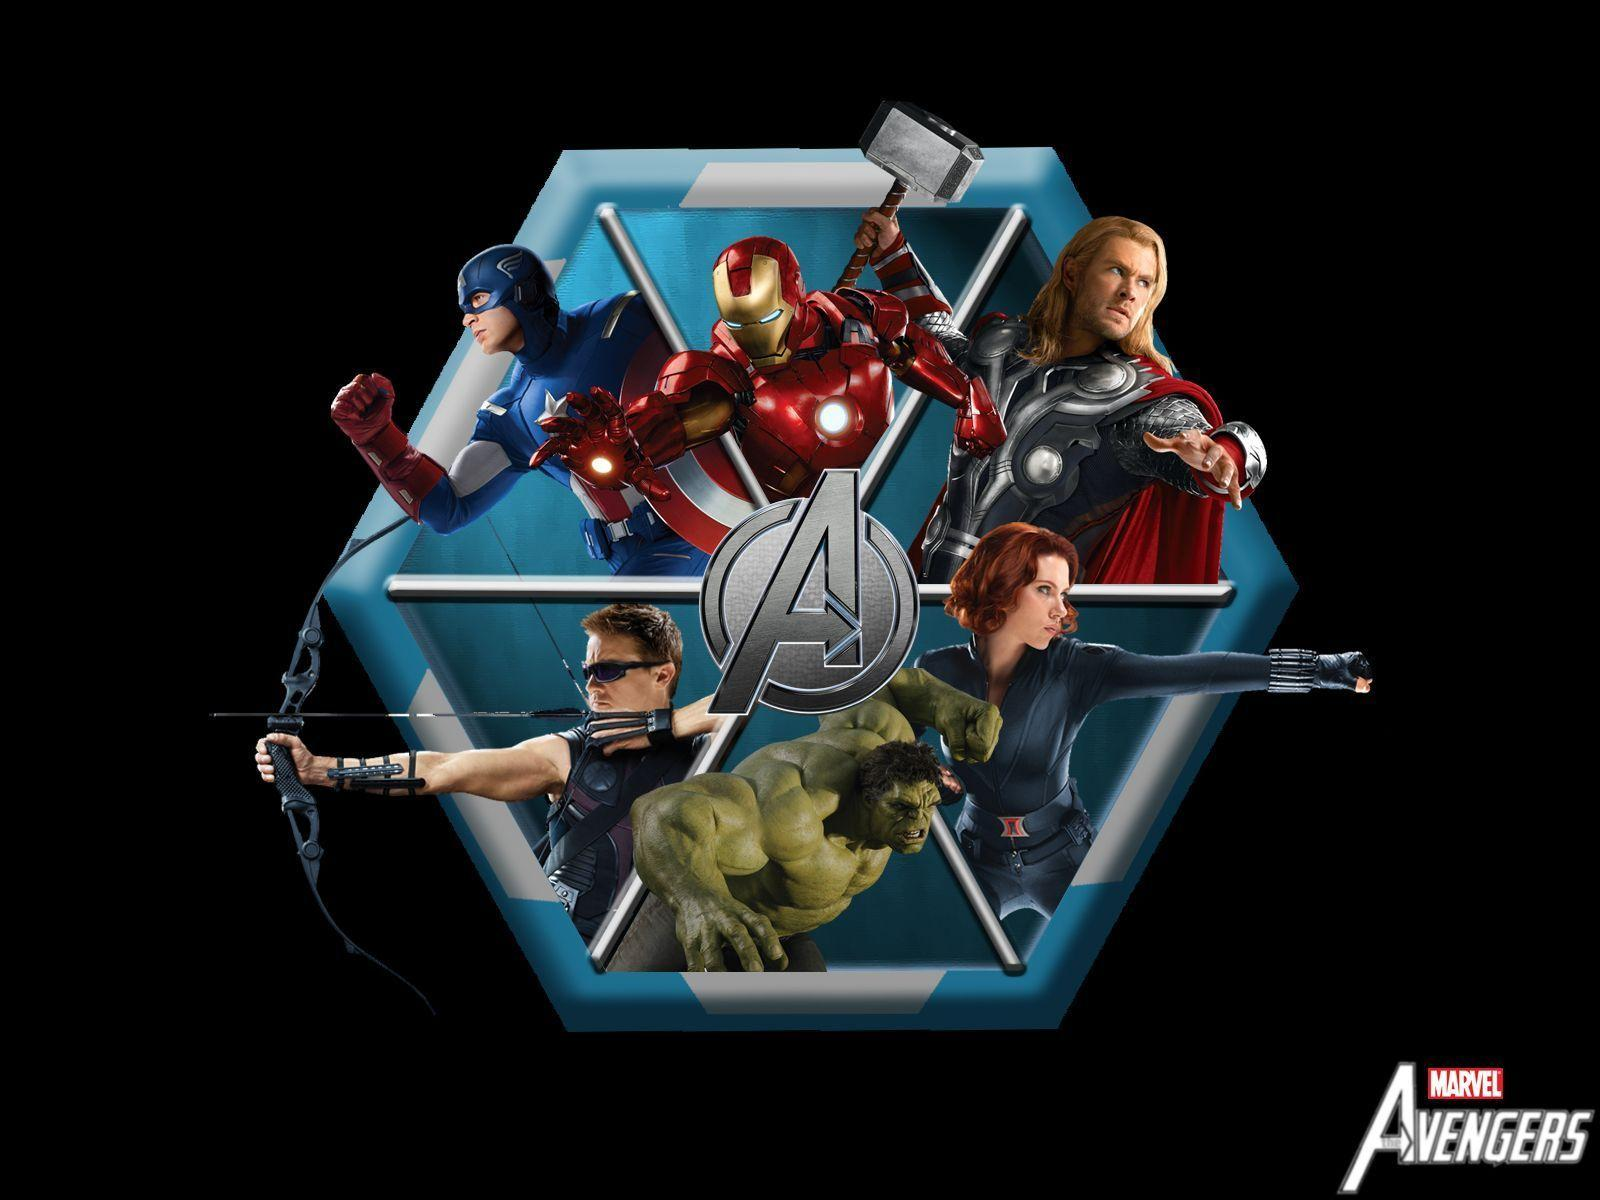 Avengers Android Wallpapers · Avengers Wallpapers